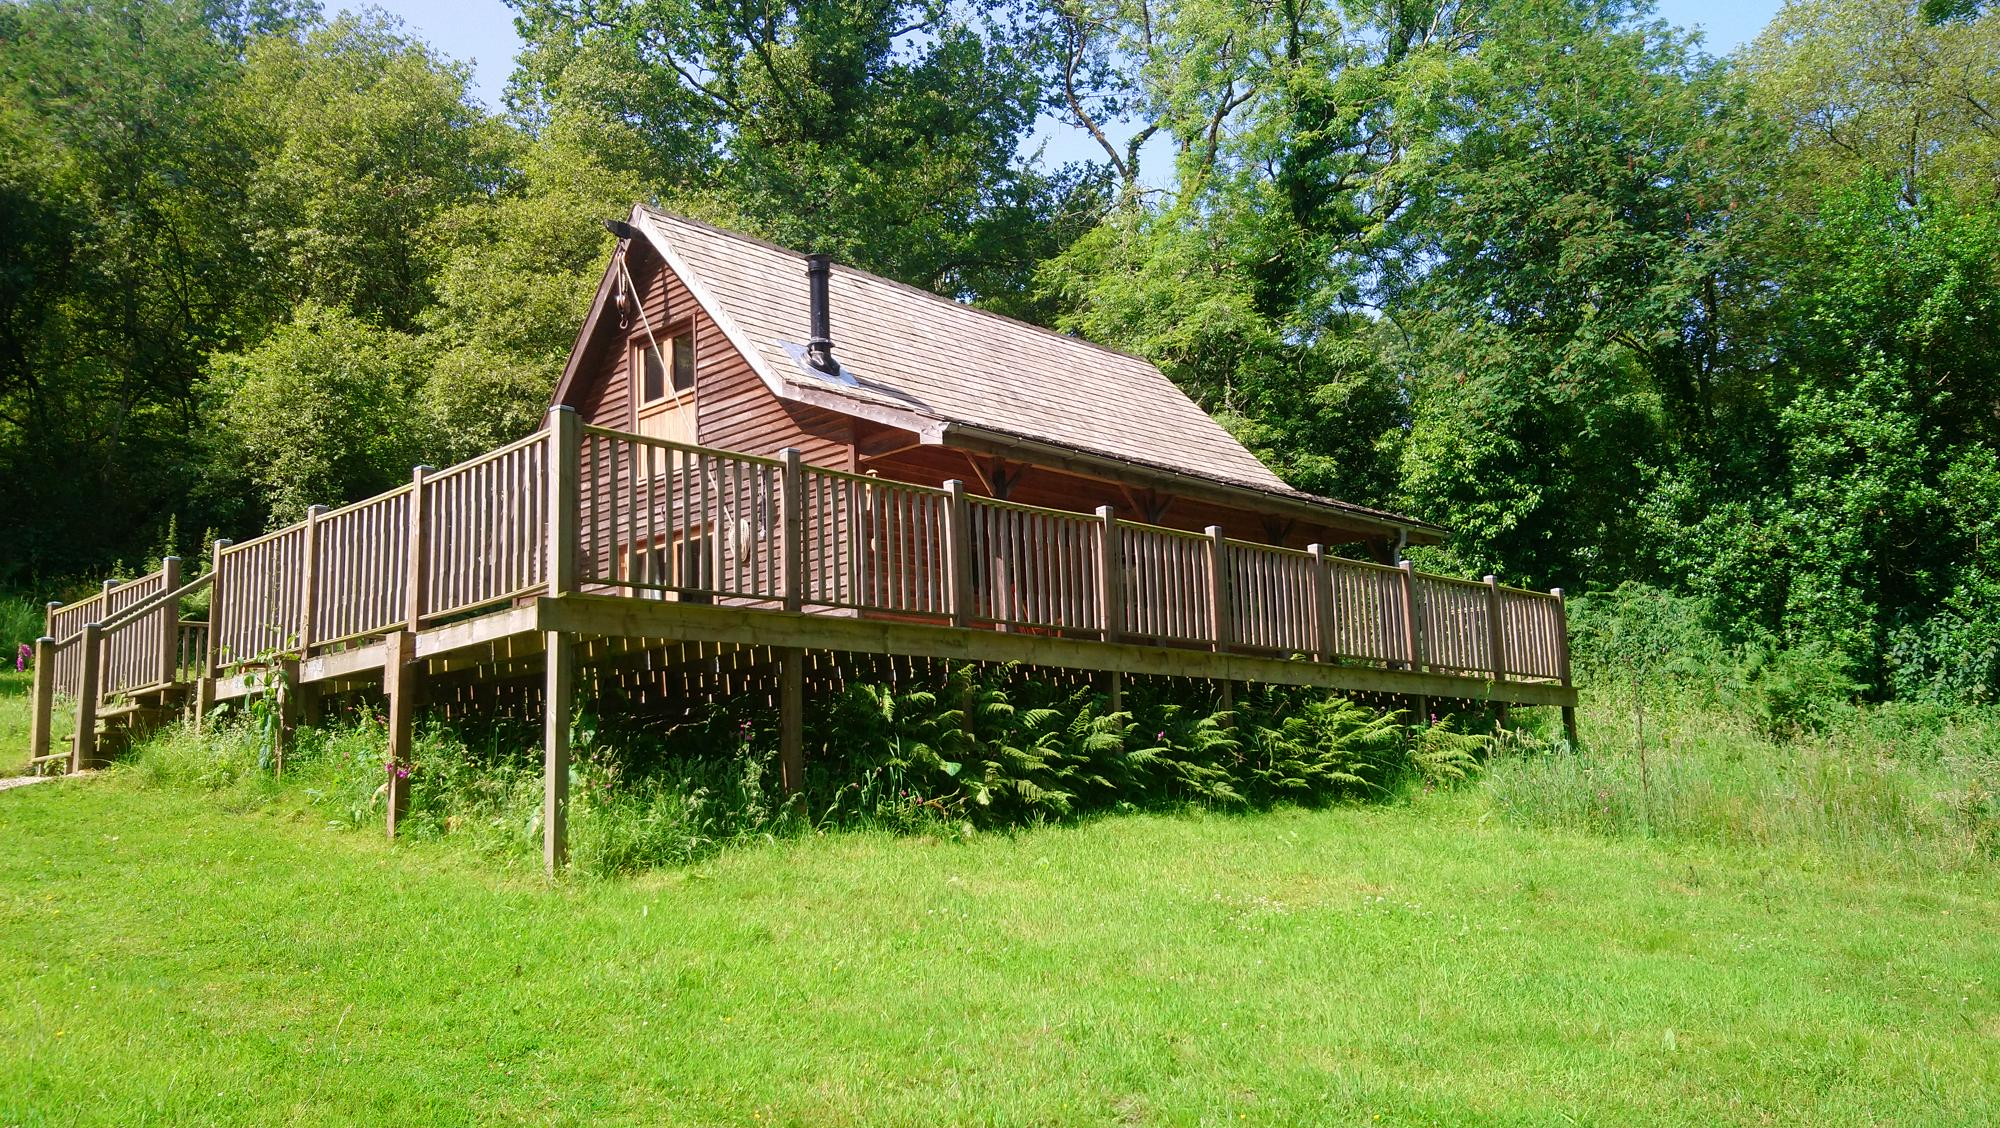 Self-Catering in Dorset holidays at Cool Places